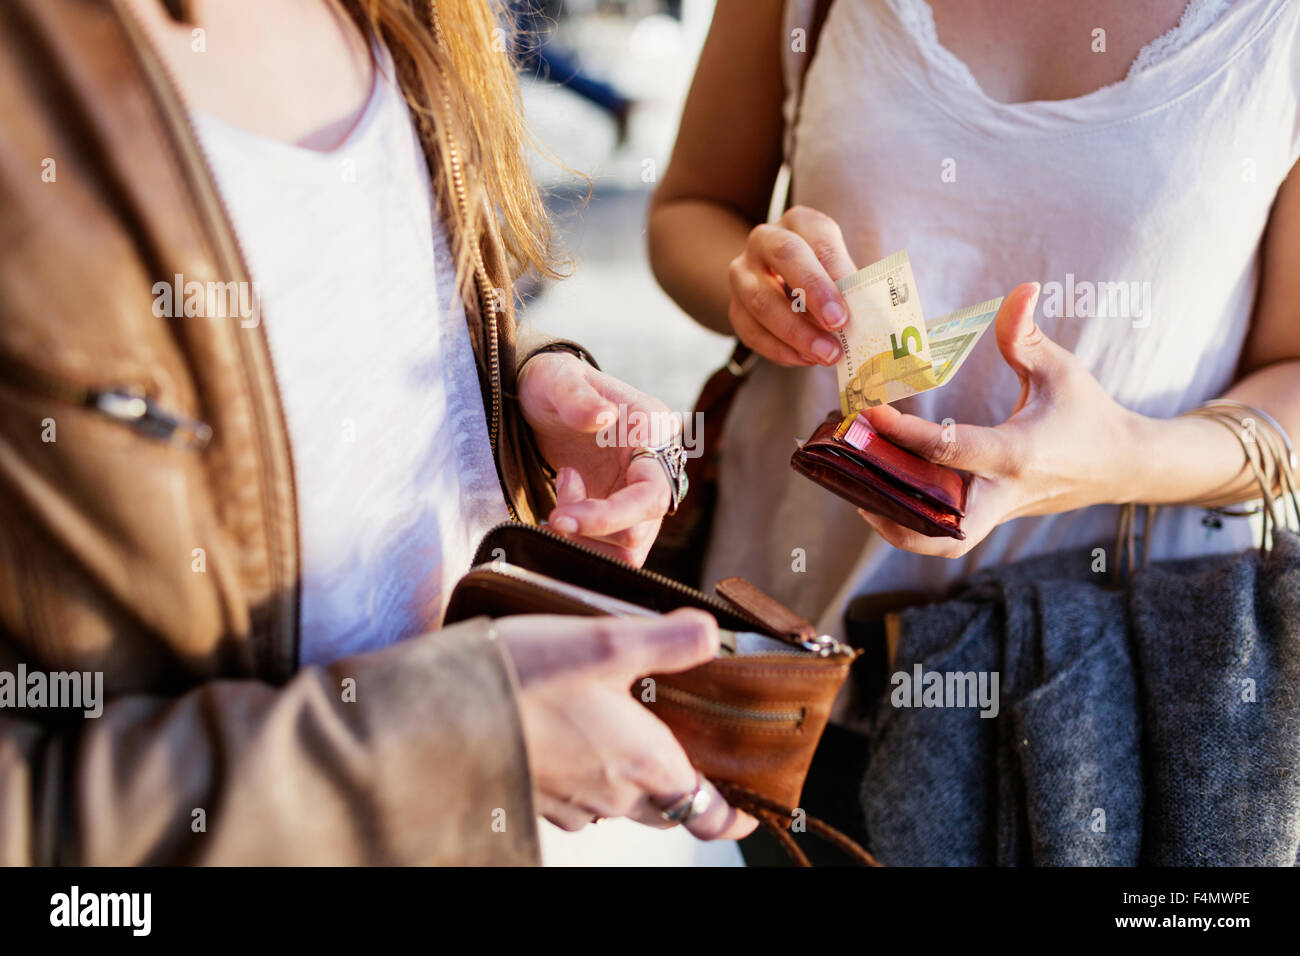 Midsection of shopaholic women holding 5 euro bill and wallets - Stock Image